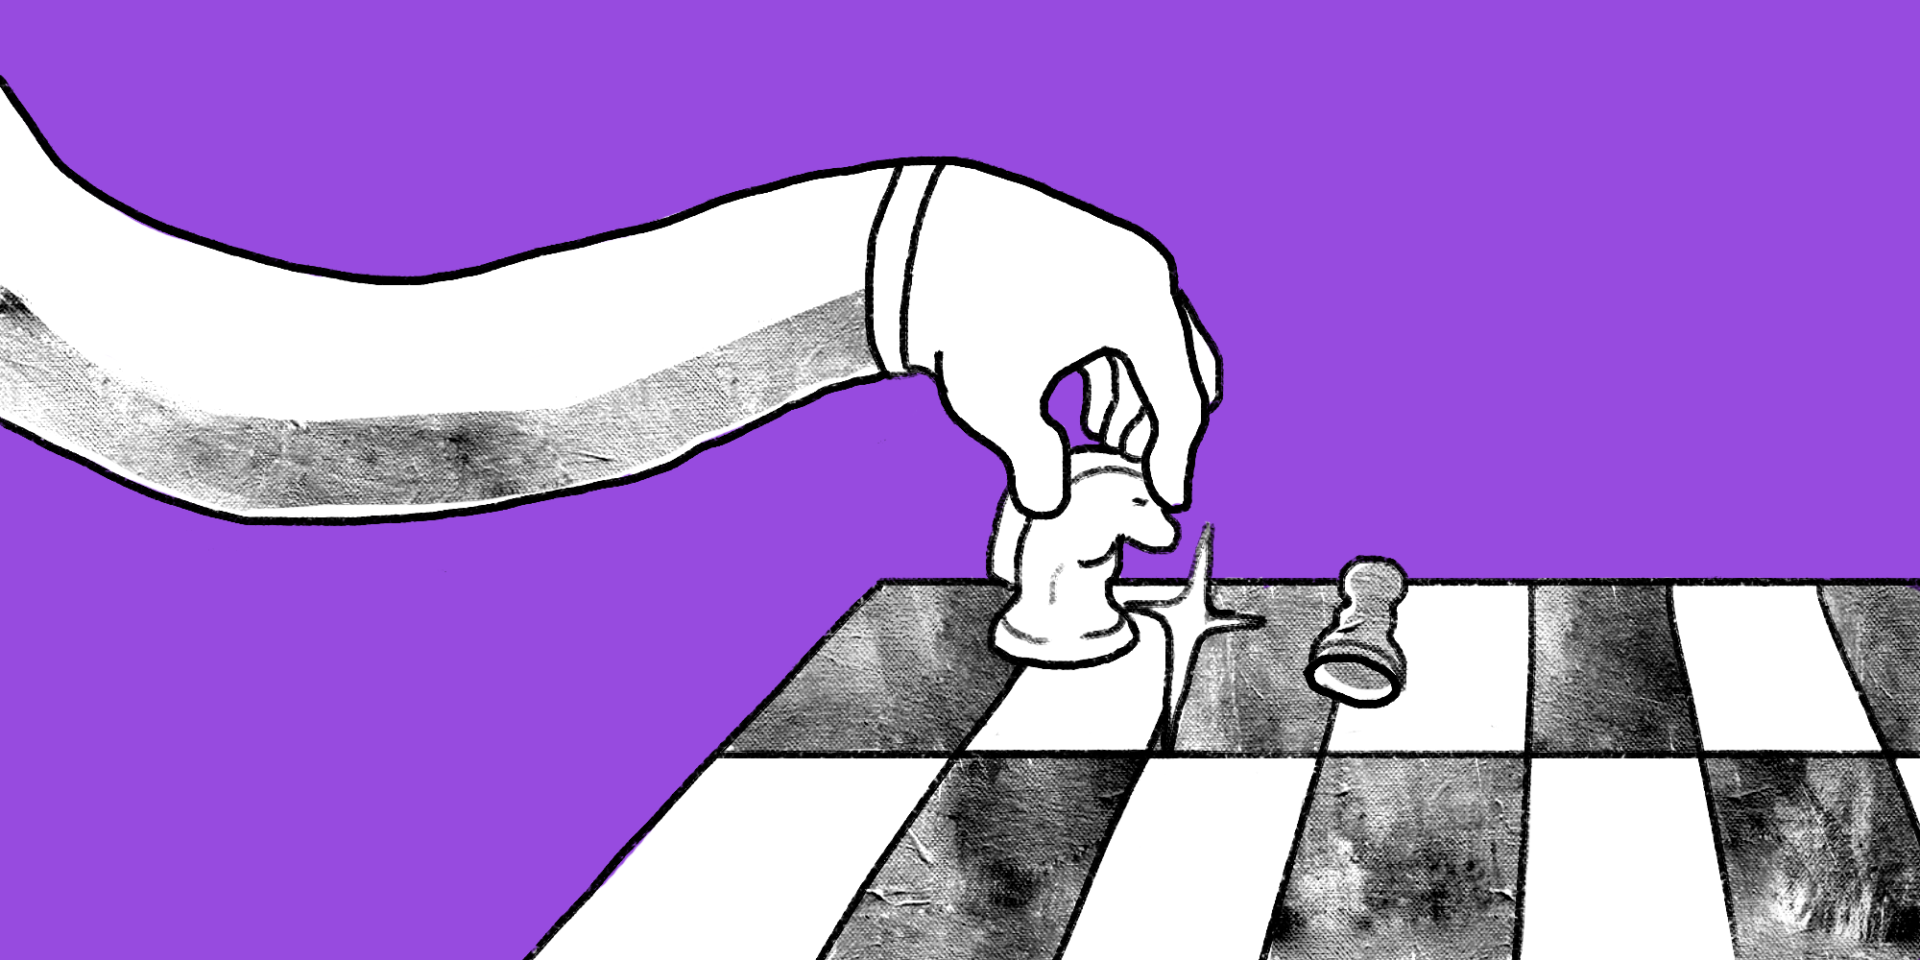 Arm reaches in from left side and hand moves knight on chess board custom illustration